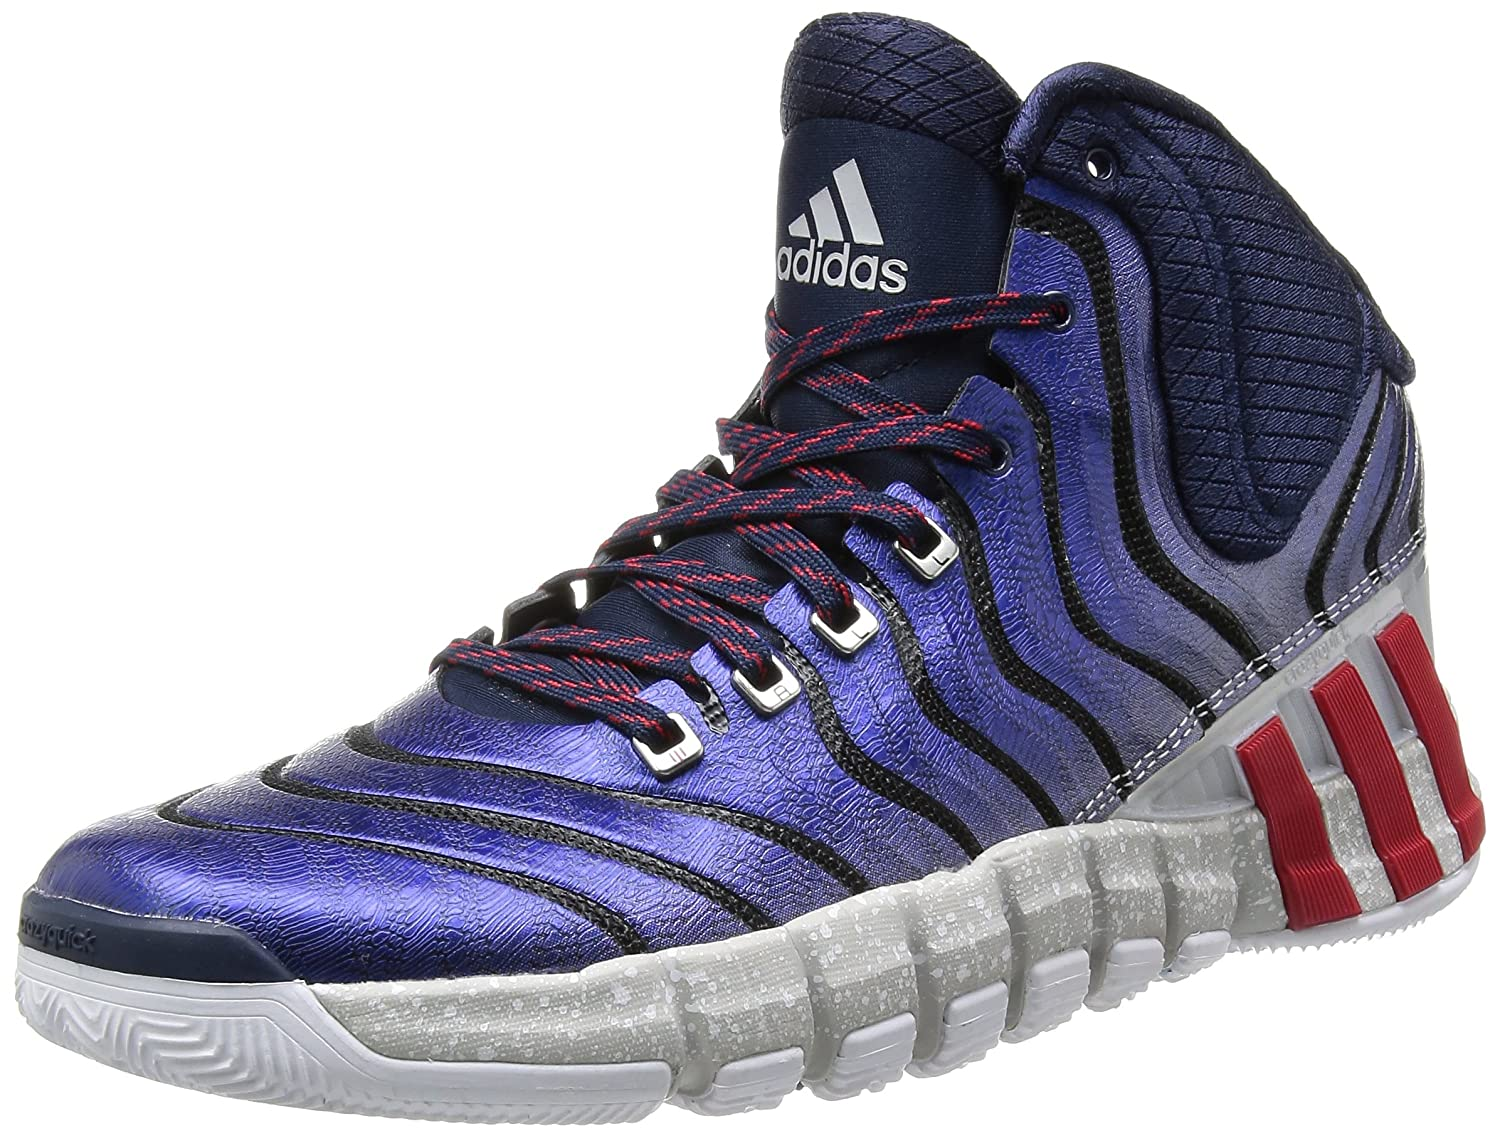 adidas Adipure Crazyquick 2.0, Men's Basketball Shoes Men's Basketball Shoes G98406